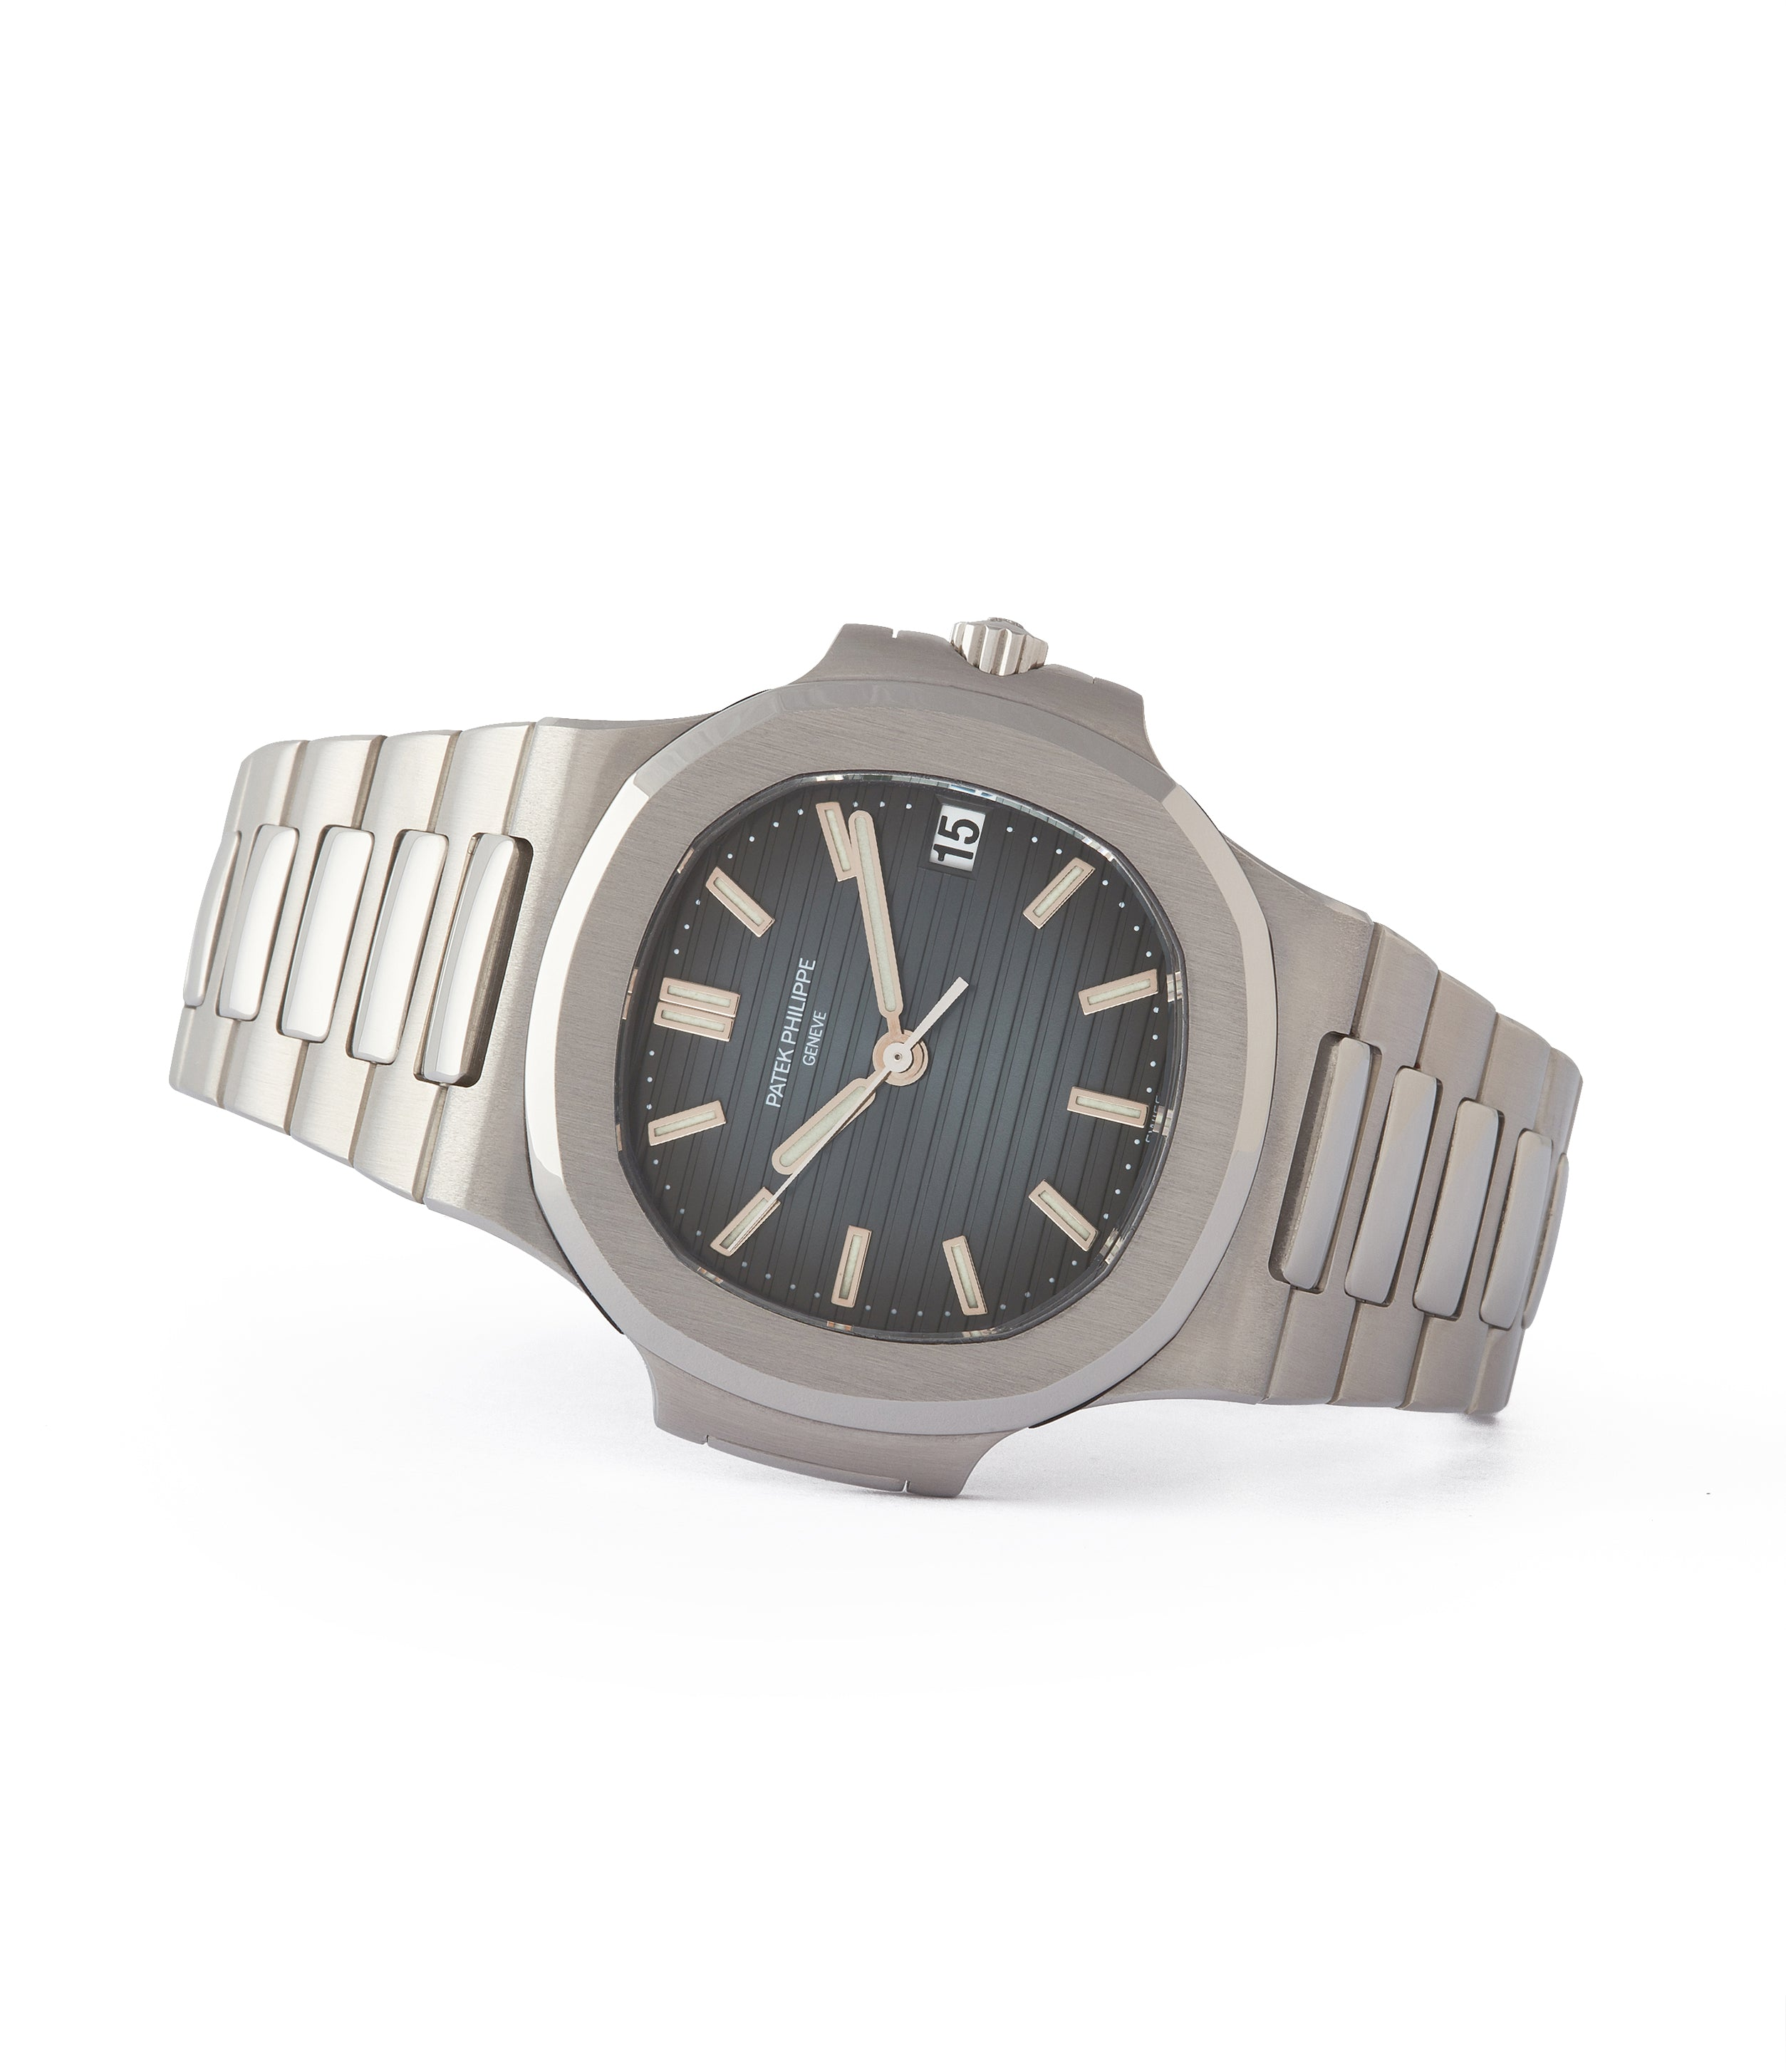 side-shot very rare Patek Philippe Nautilus 5800/1A-001 steel sport pre-owned watch for sale online at A Collected Man London UK specialist of rare watches